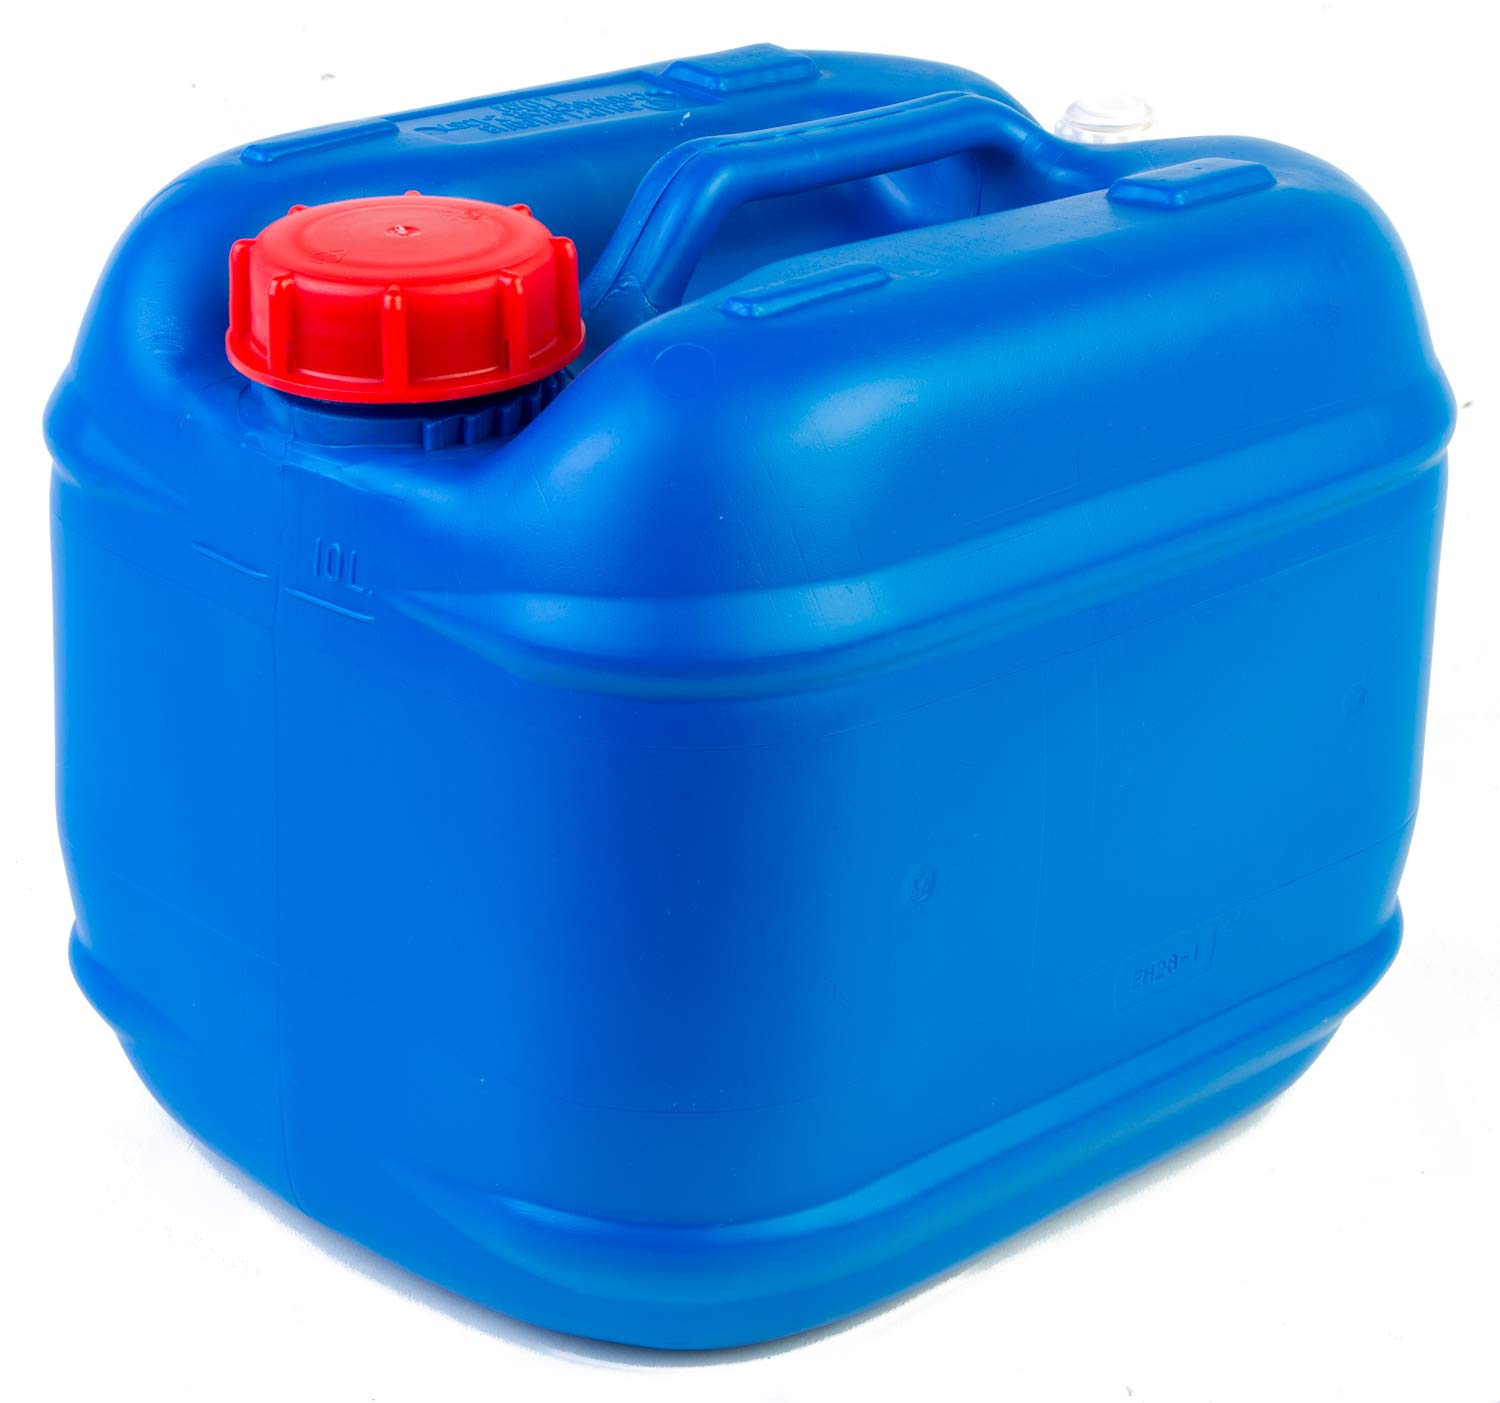 Hudson Exchange 2.5 Gallon (10 Liter) Handled Container with Cap, HDPE, Blue by Hudson Exchange